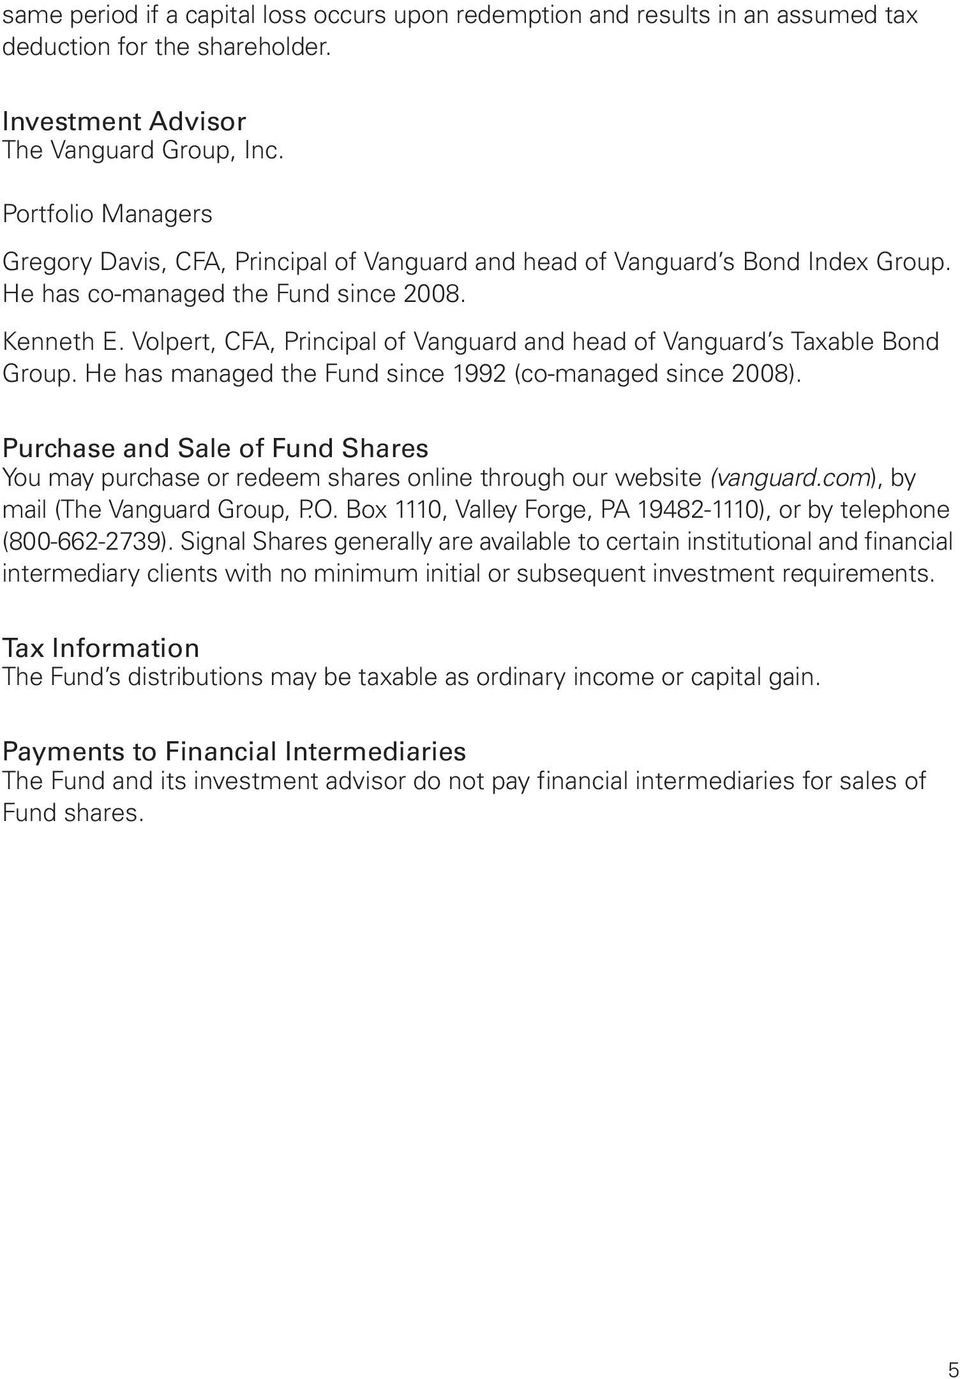 Volpert, CFA, Principal of Vanguard and head of Vanguard s Taxable Bond Group. He has managed the Fund since 1992 (co-managed since 2008).